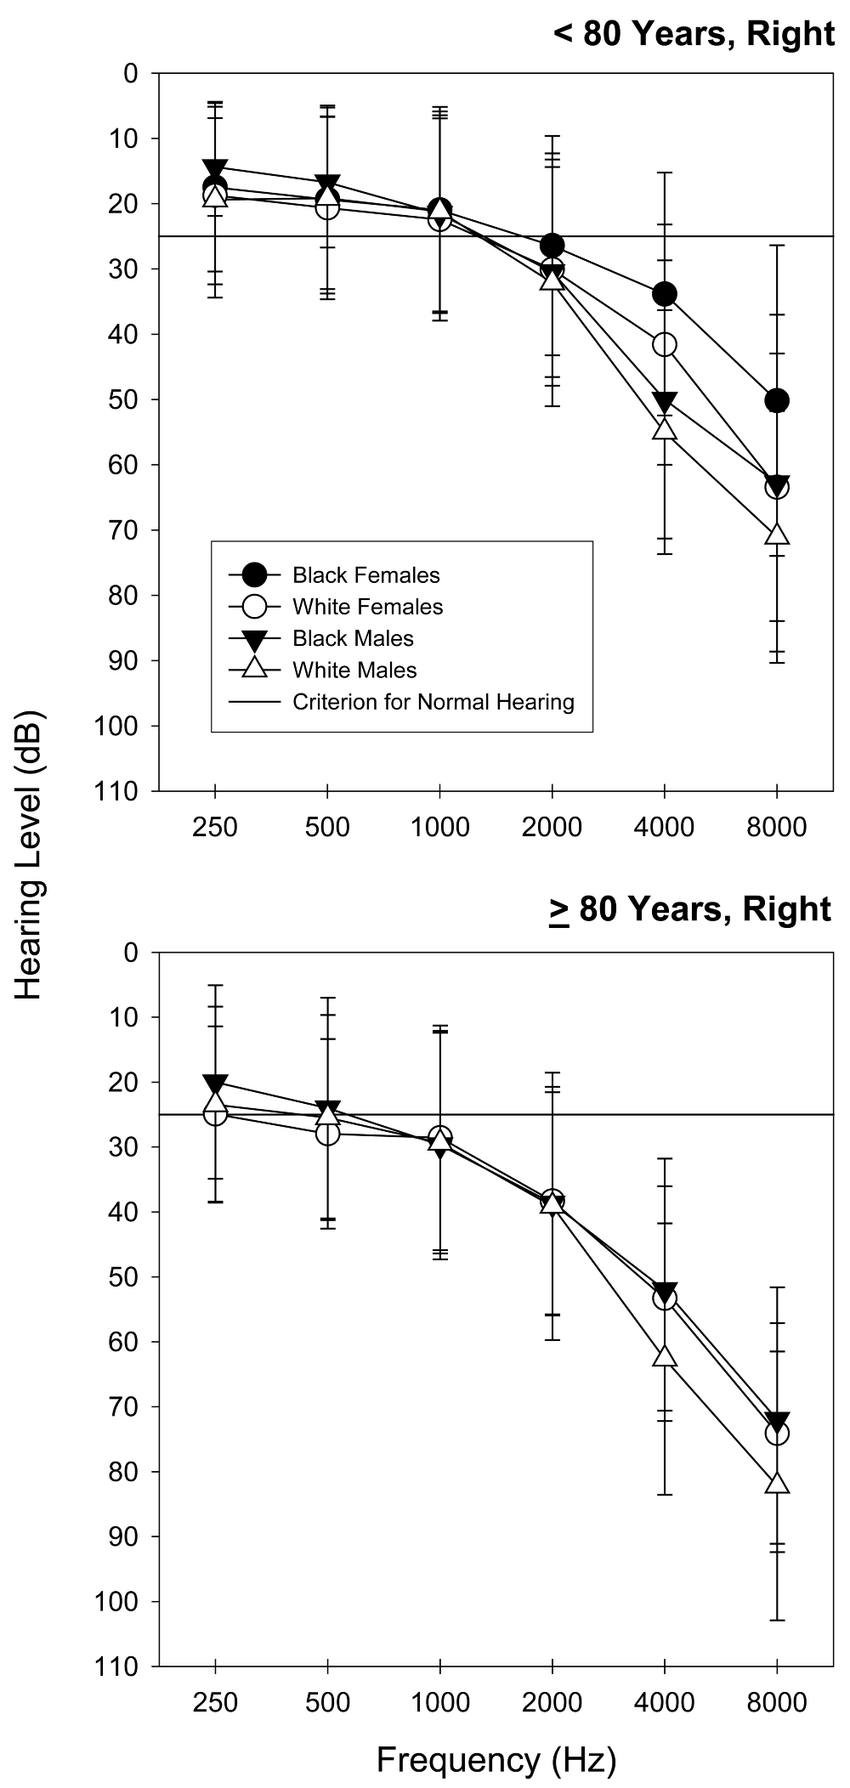 hight resolution of mean right ear hearing thresholds for standard audiometric frequencies the error bars reflect